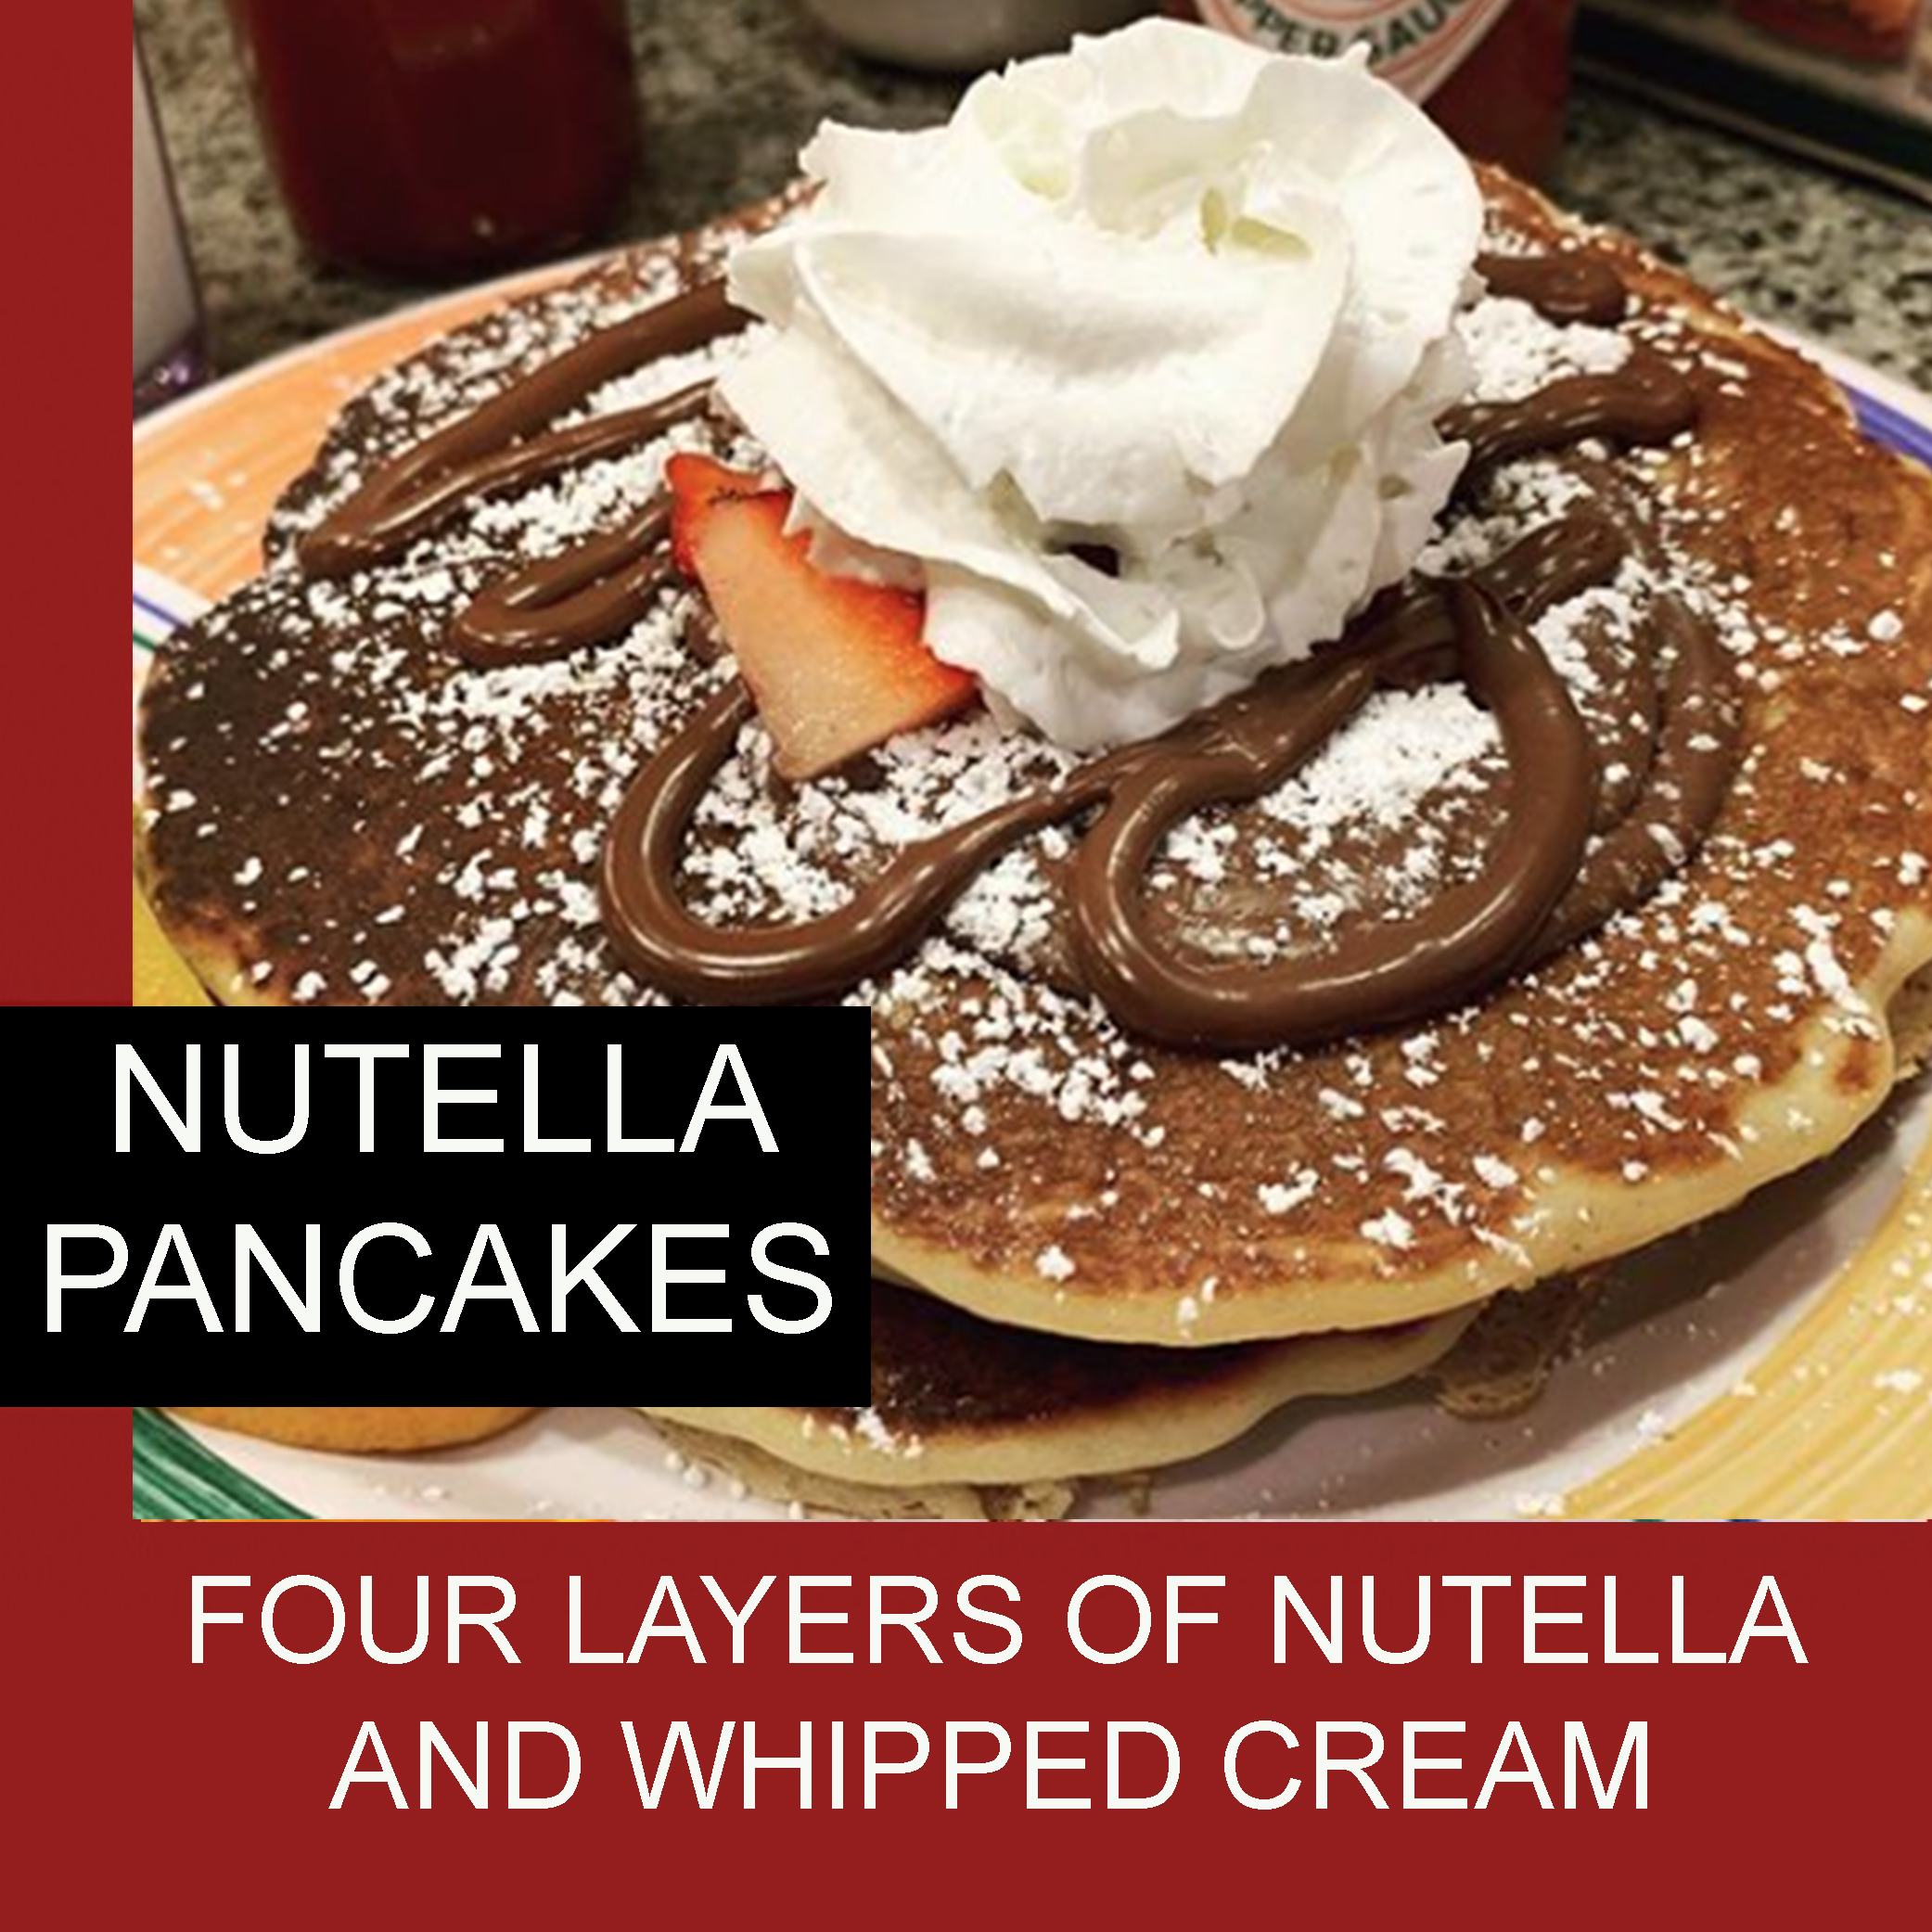 nutella pancakes four layers of nutella strawberies and whipped cream